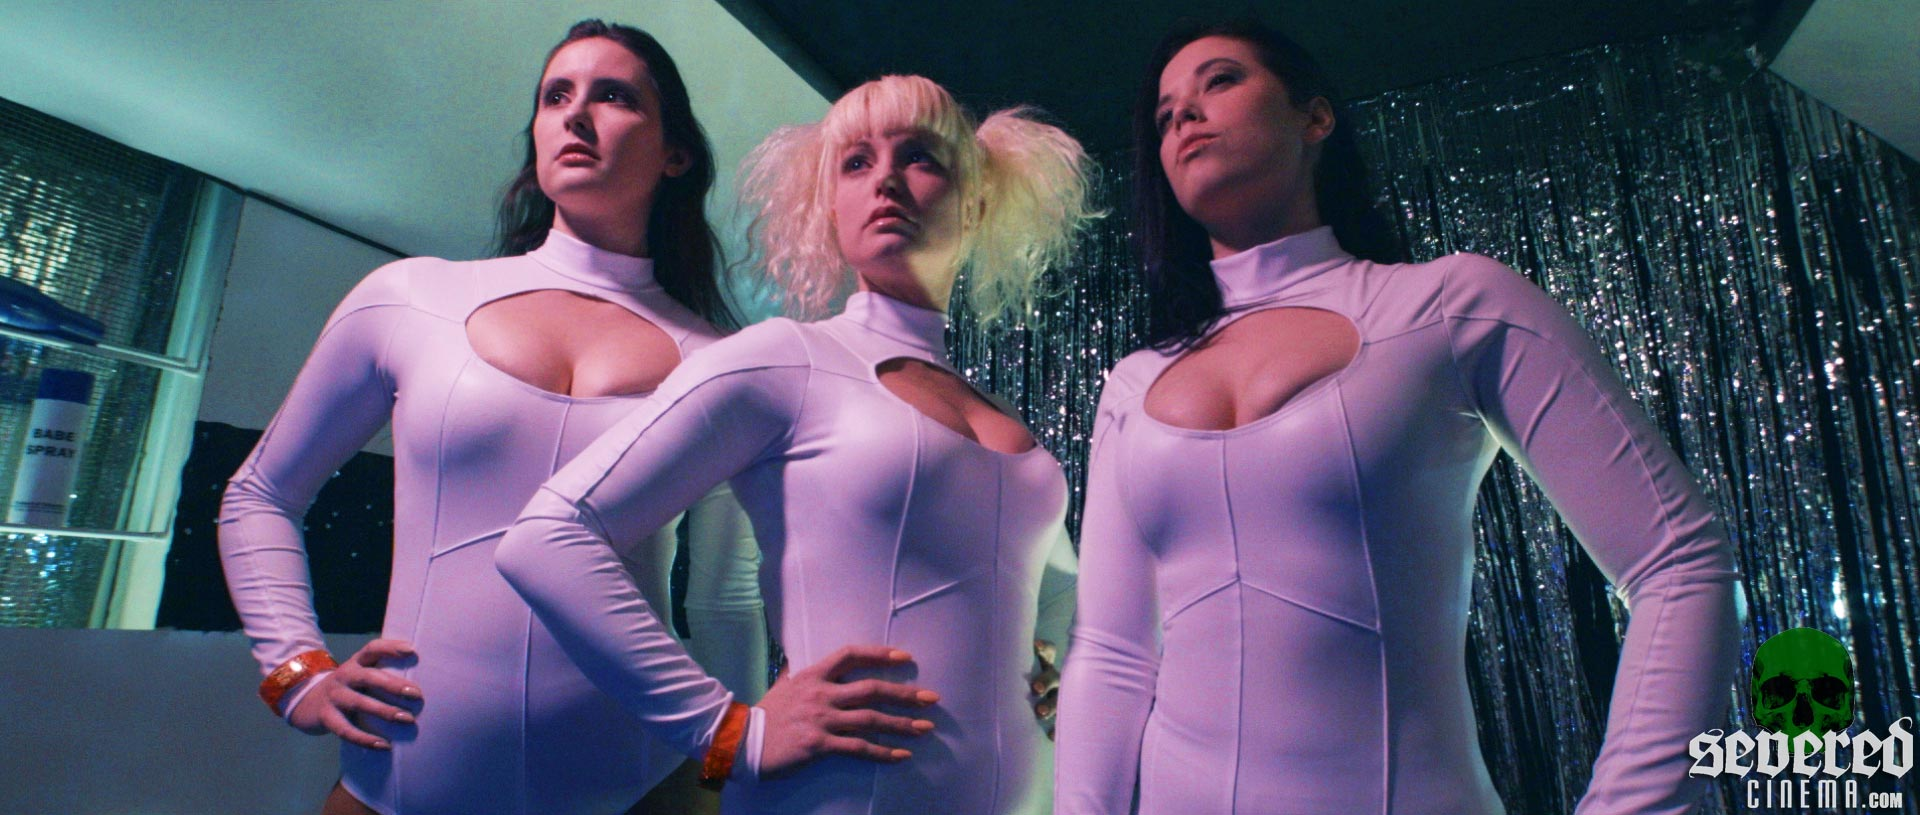 Severed Cinema News: Space Babes from Outer Space NSFW Trailer and Some Juicy Stills!